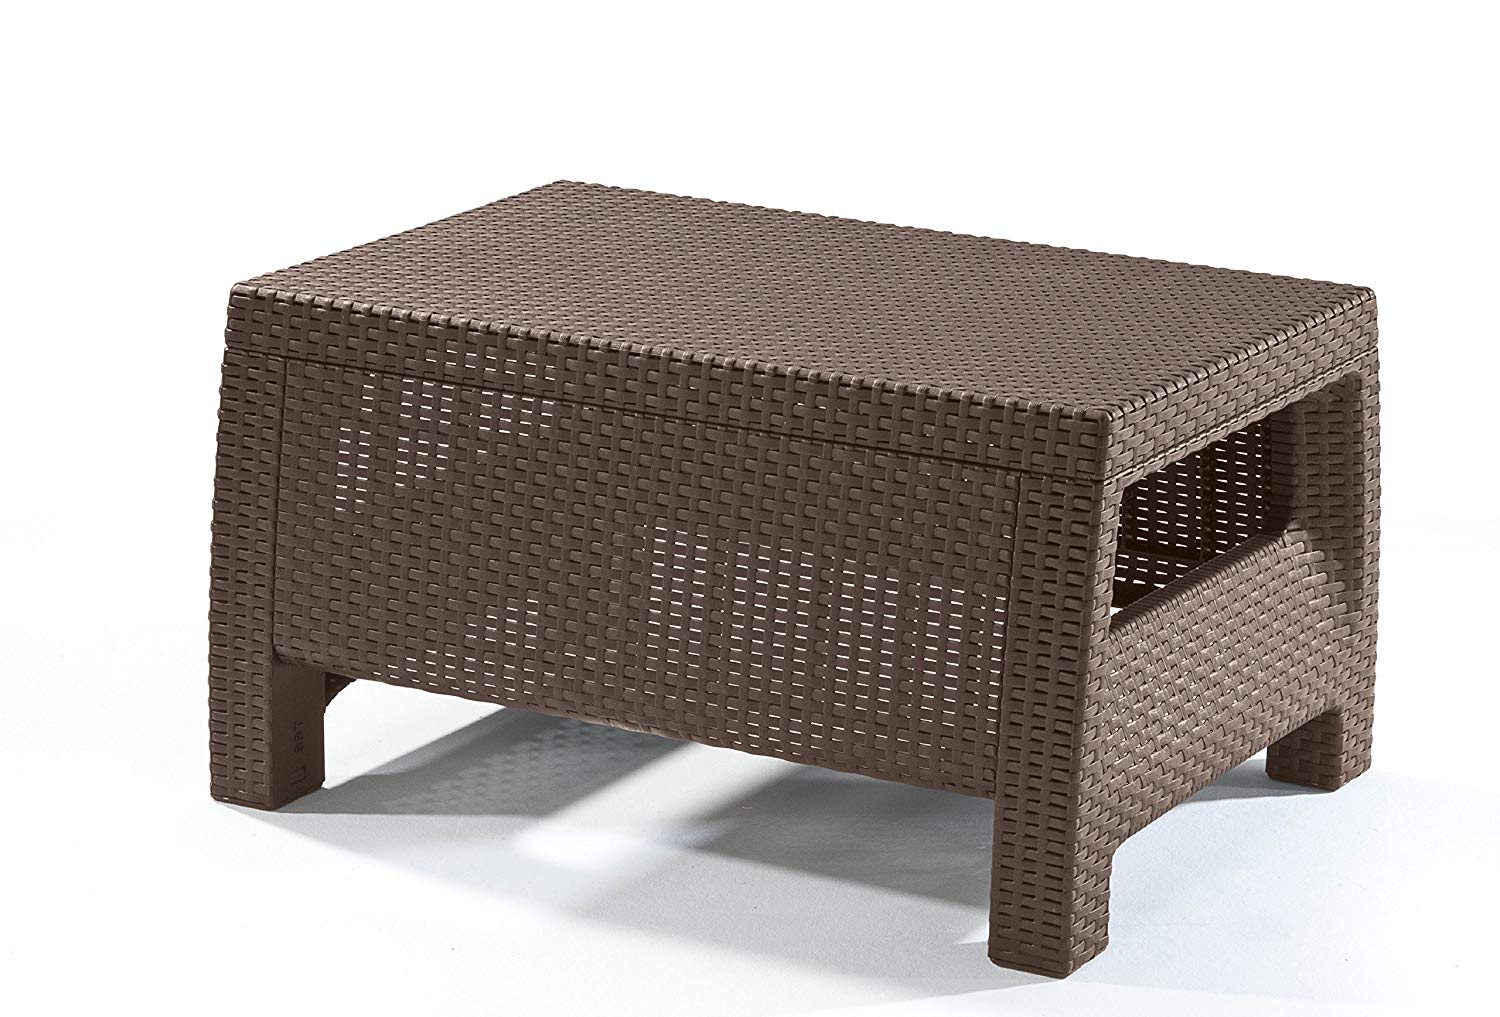 keter corfu coffee table modern all weather outdoor patio garden backyard furniture brown side with cooler ott outside cover bedroom couch thin sofa console storage hall accent